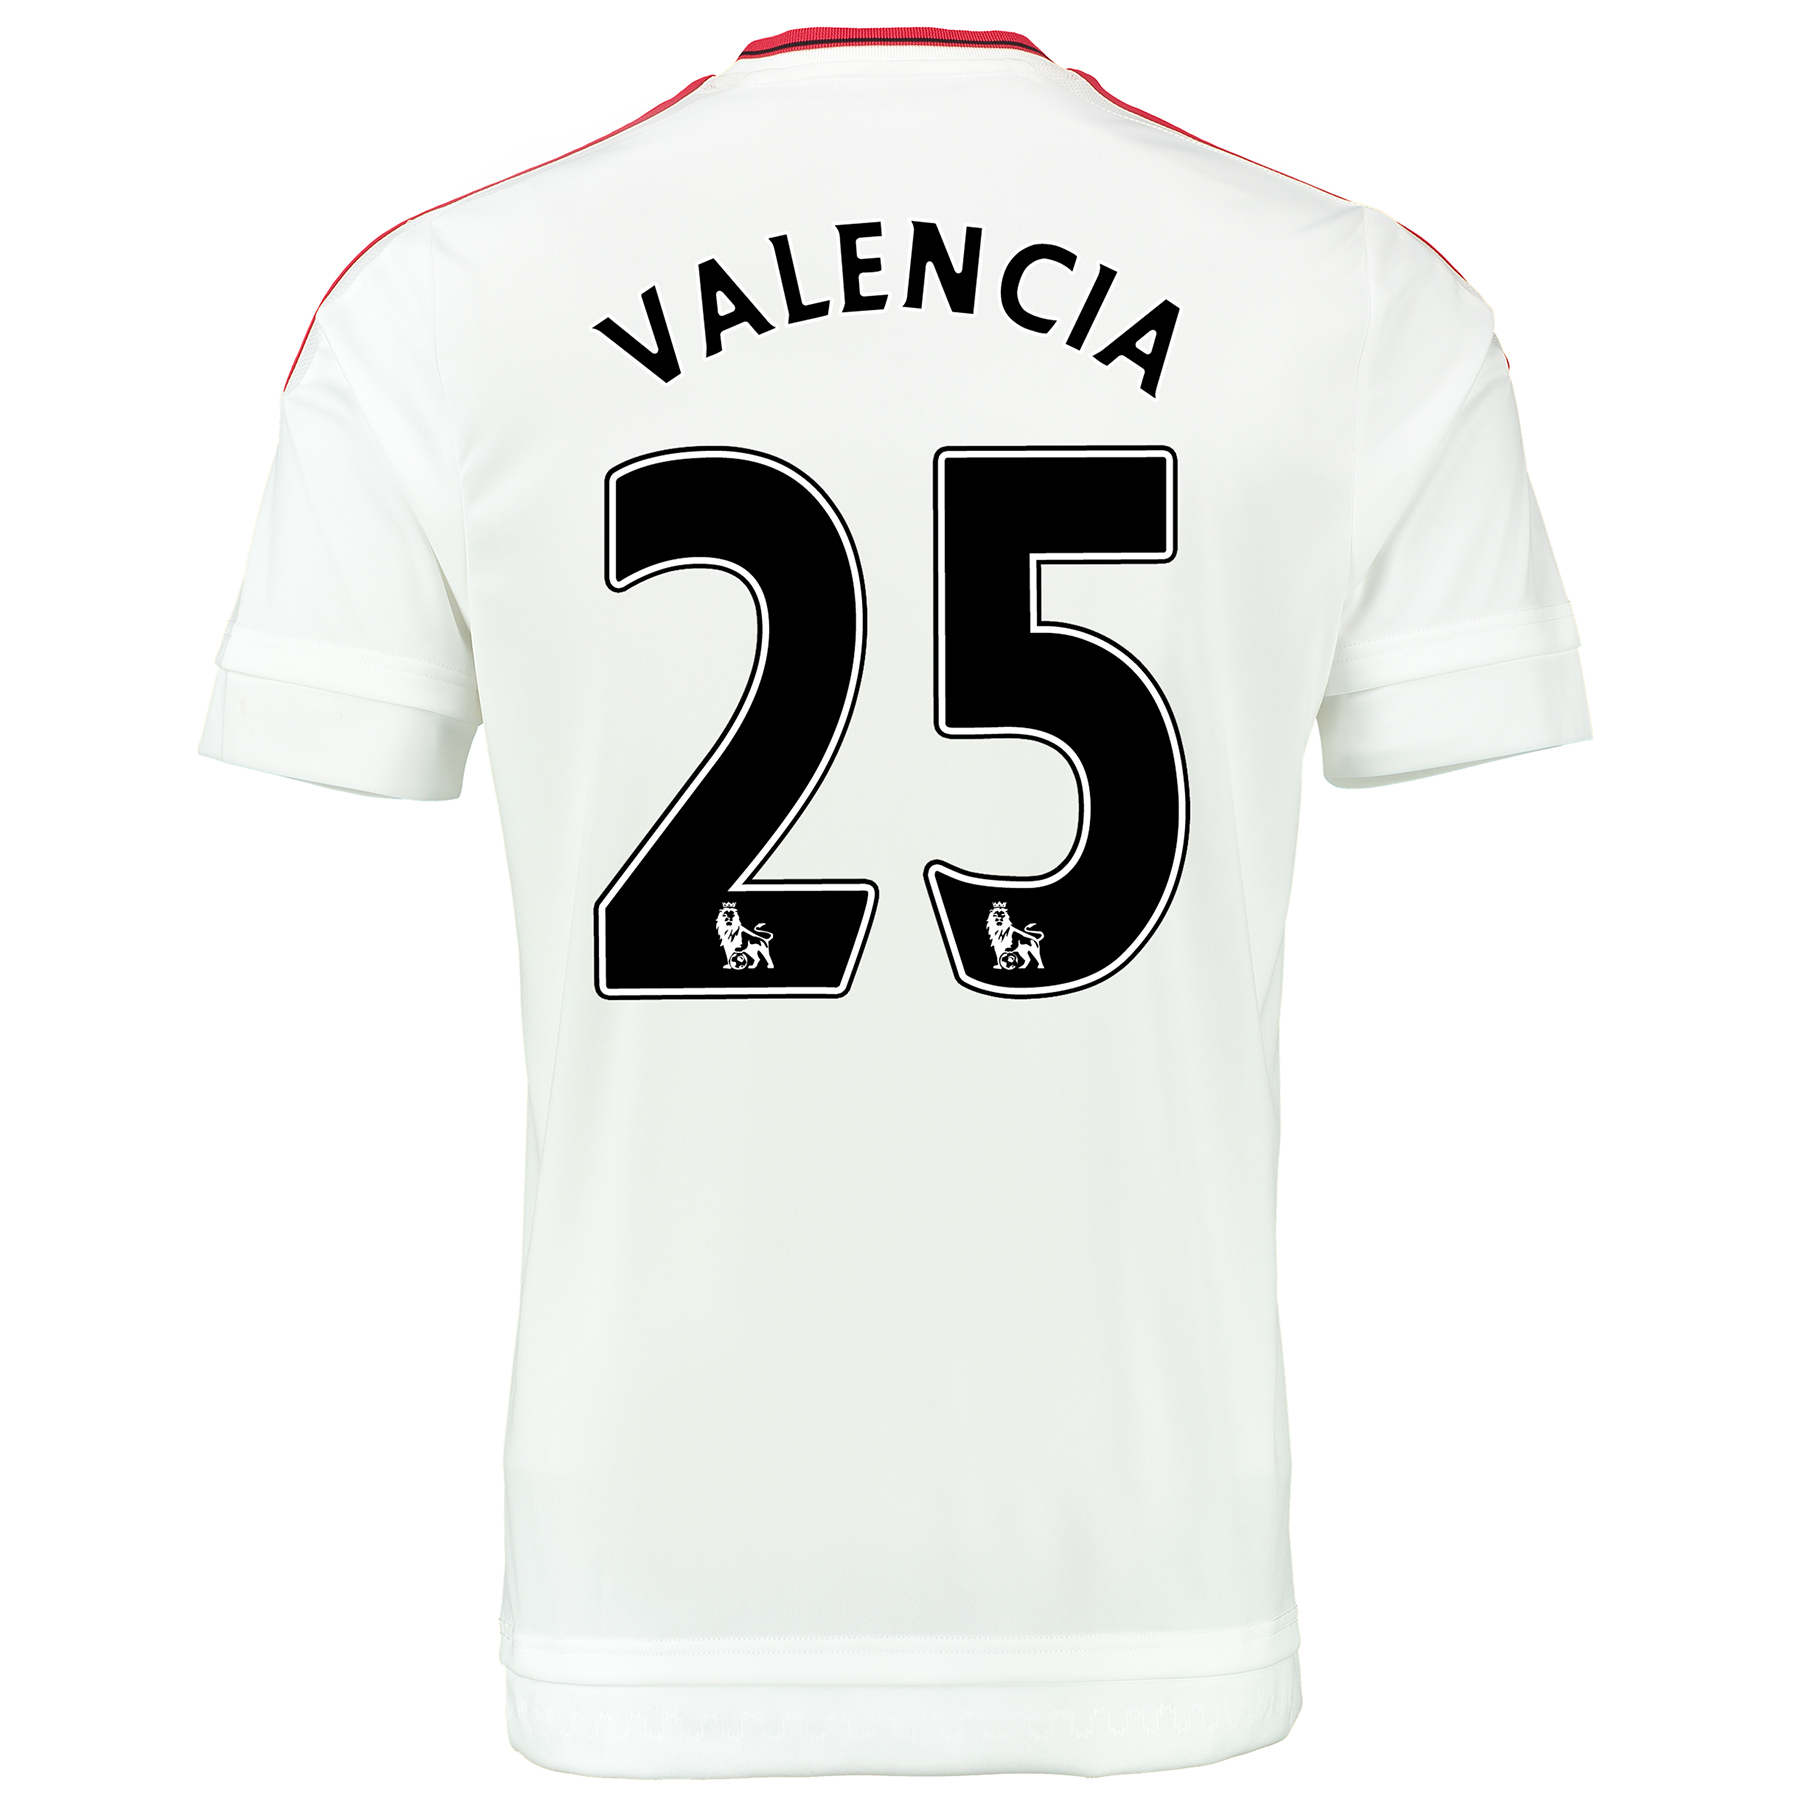 Manchester United Away Baby Kit 2015/16 White with Valencia 25 printin